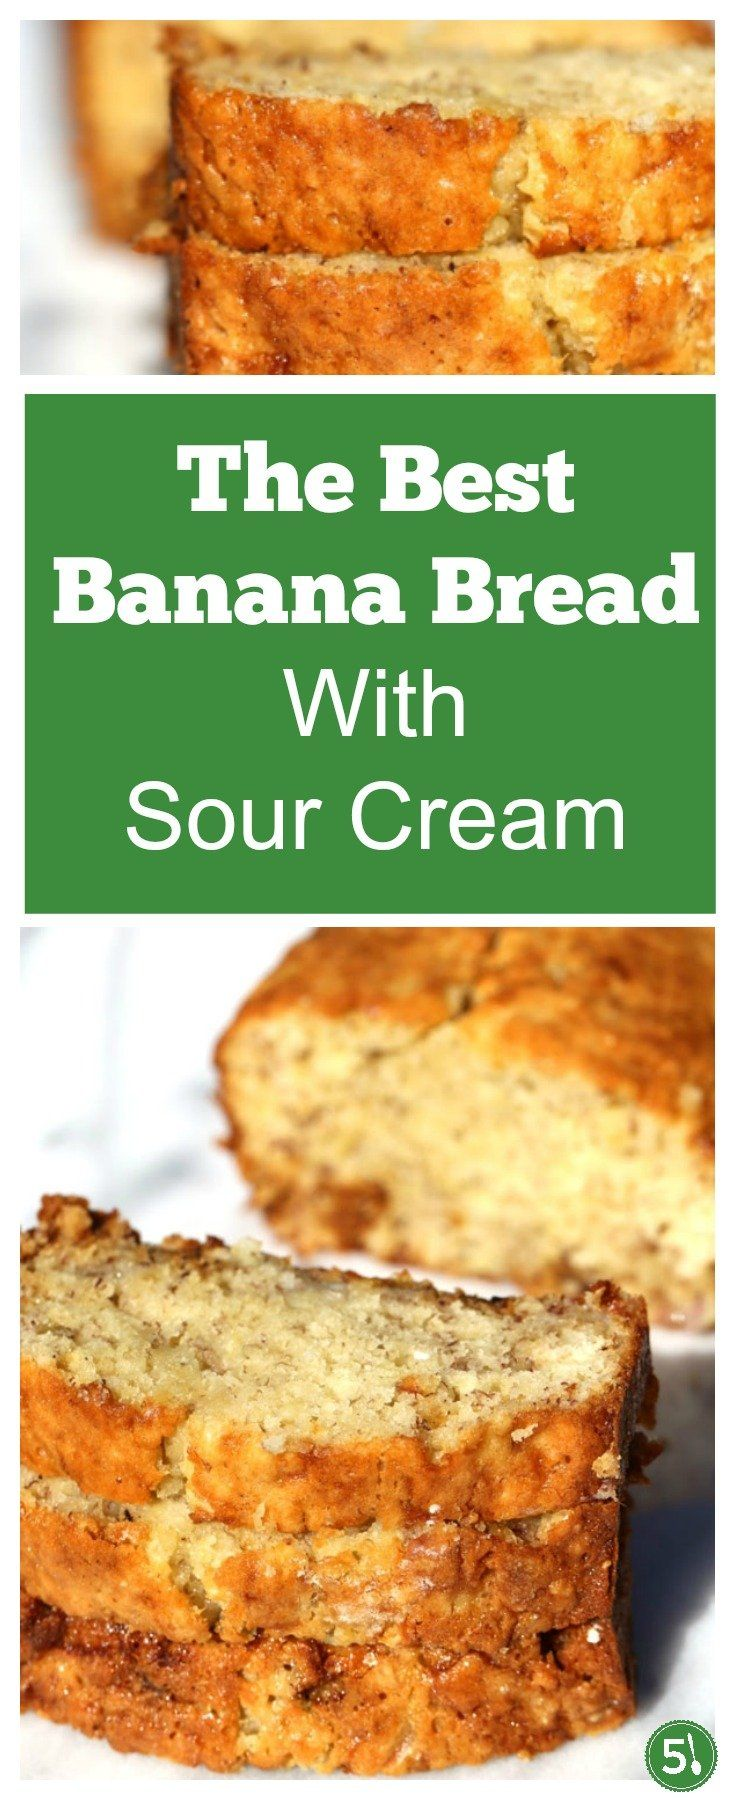 This moist banana bread with sour cream recipe is so delicious.  The texture of this bread is soft, with a slightly crispy top and has been voted the best banana bread by my family.